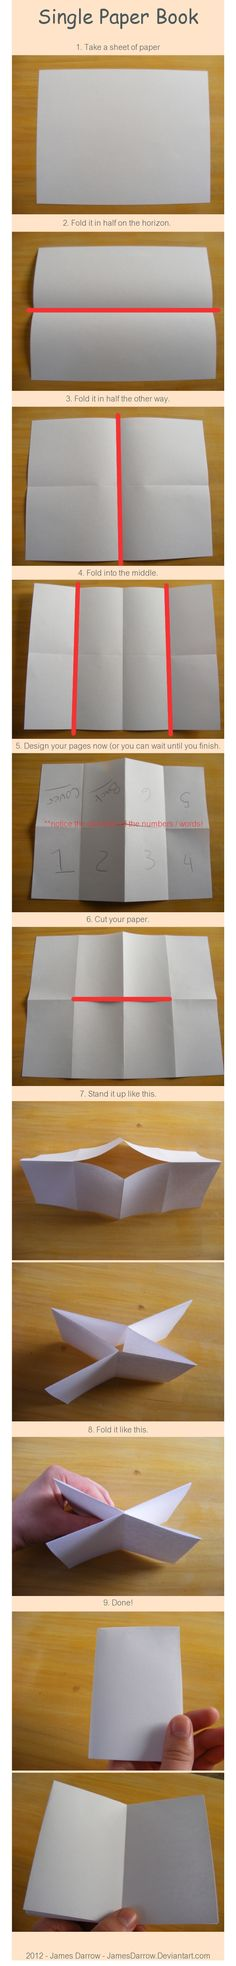 Foldable. Single sheet of paper = mini book!